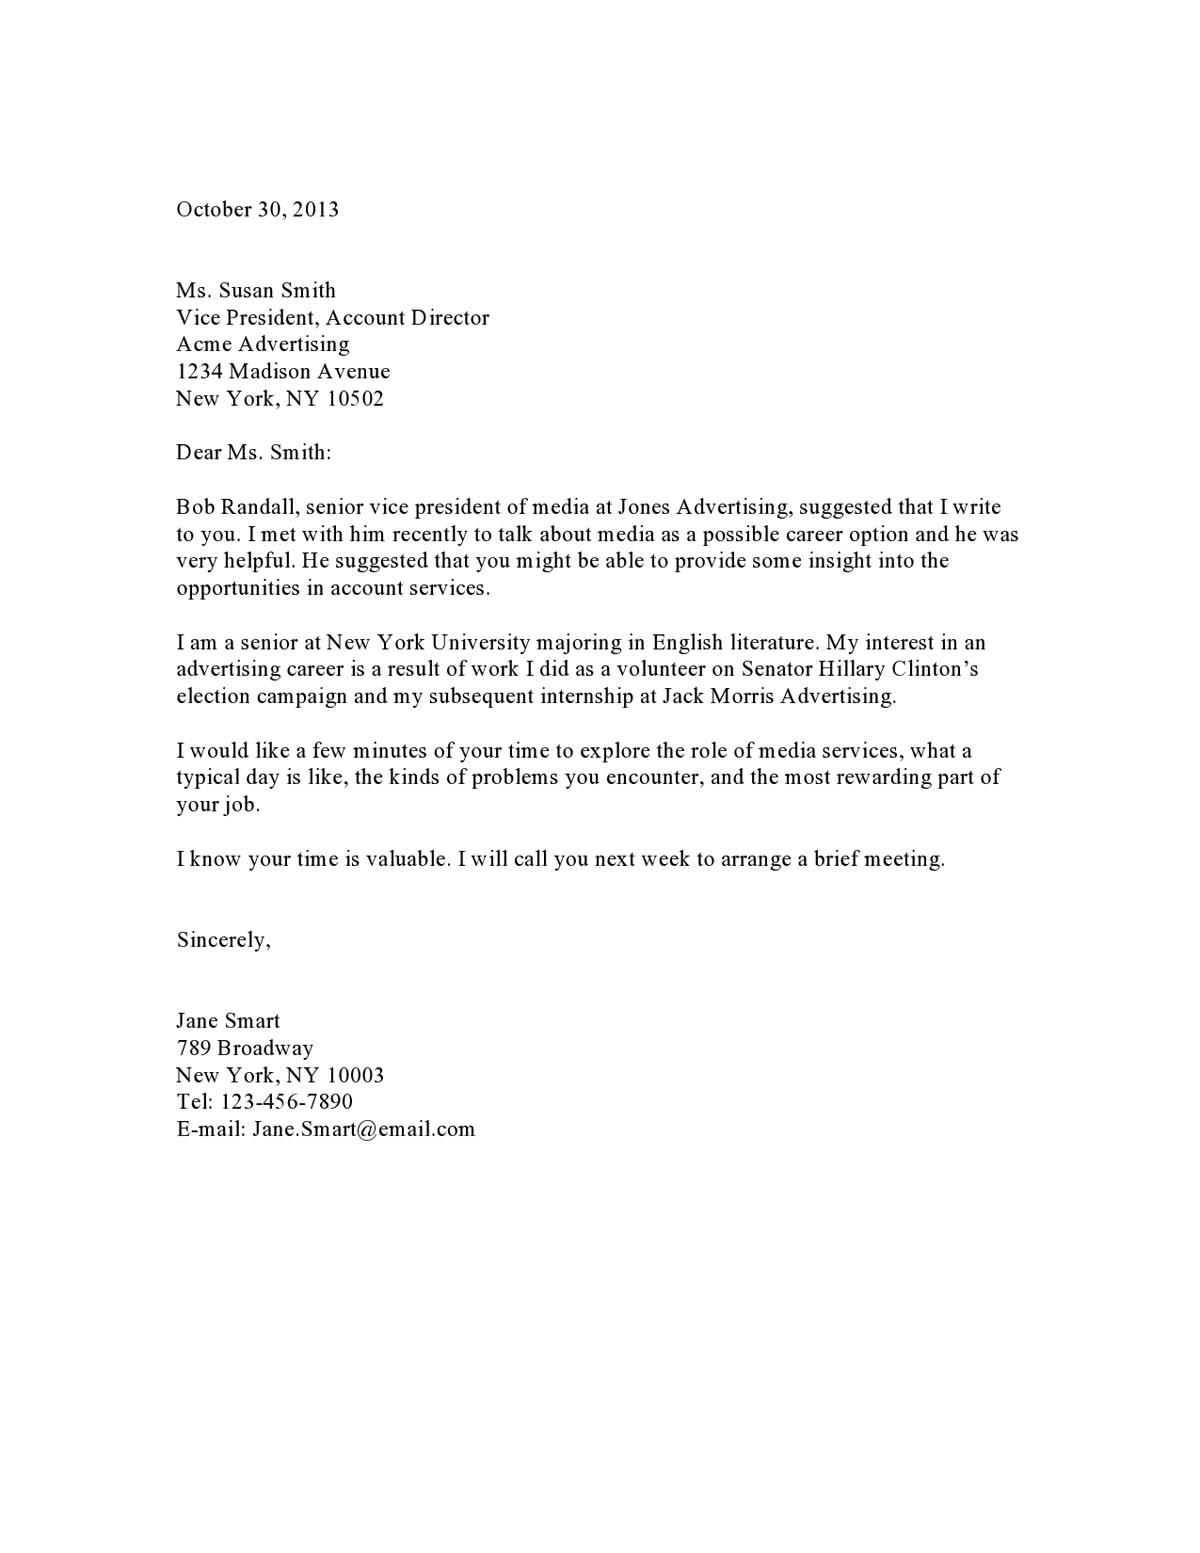 Sample cover letter for applying a job for Cover letter for working with animals